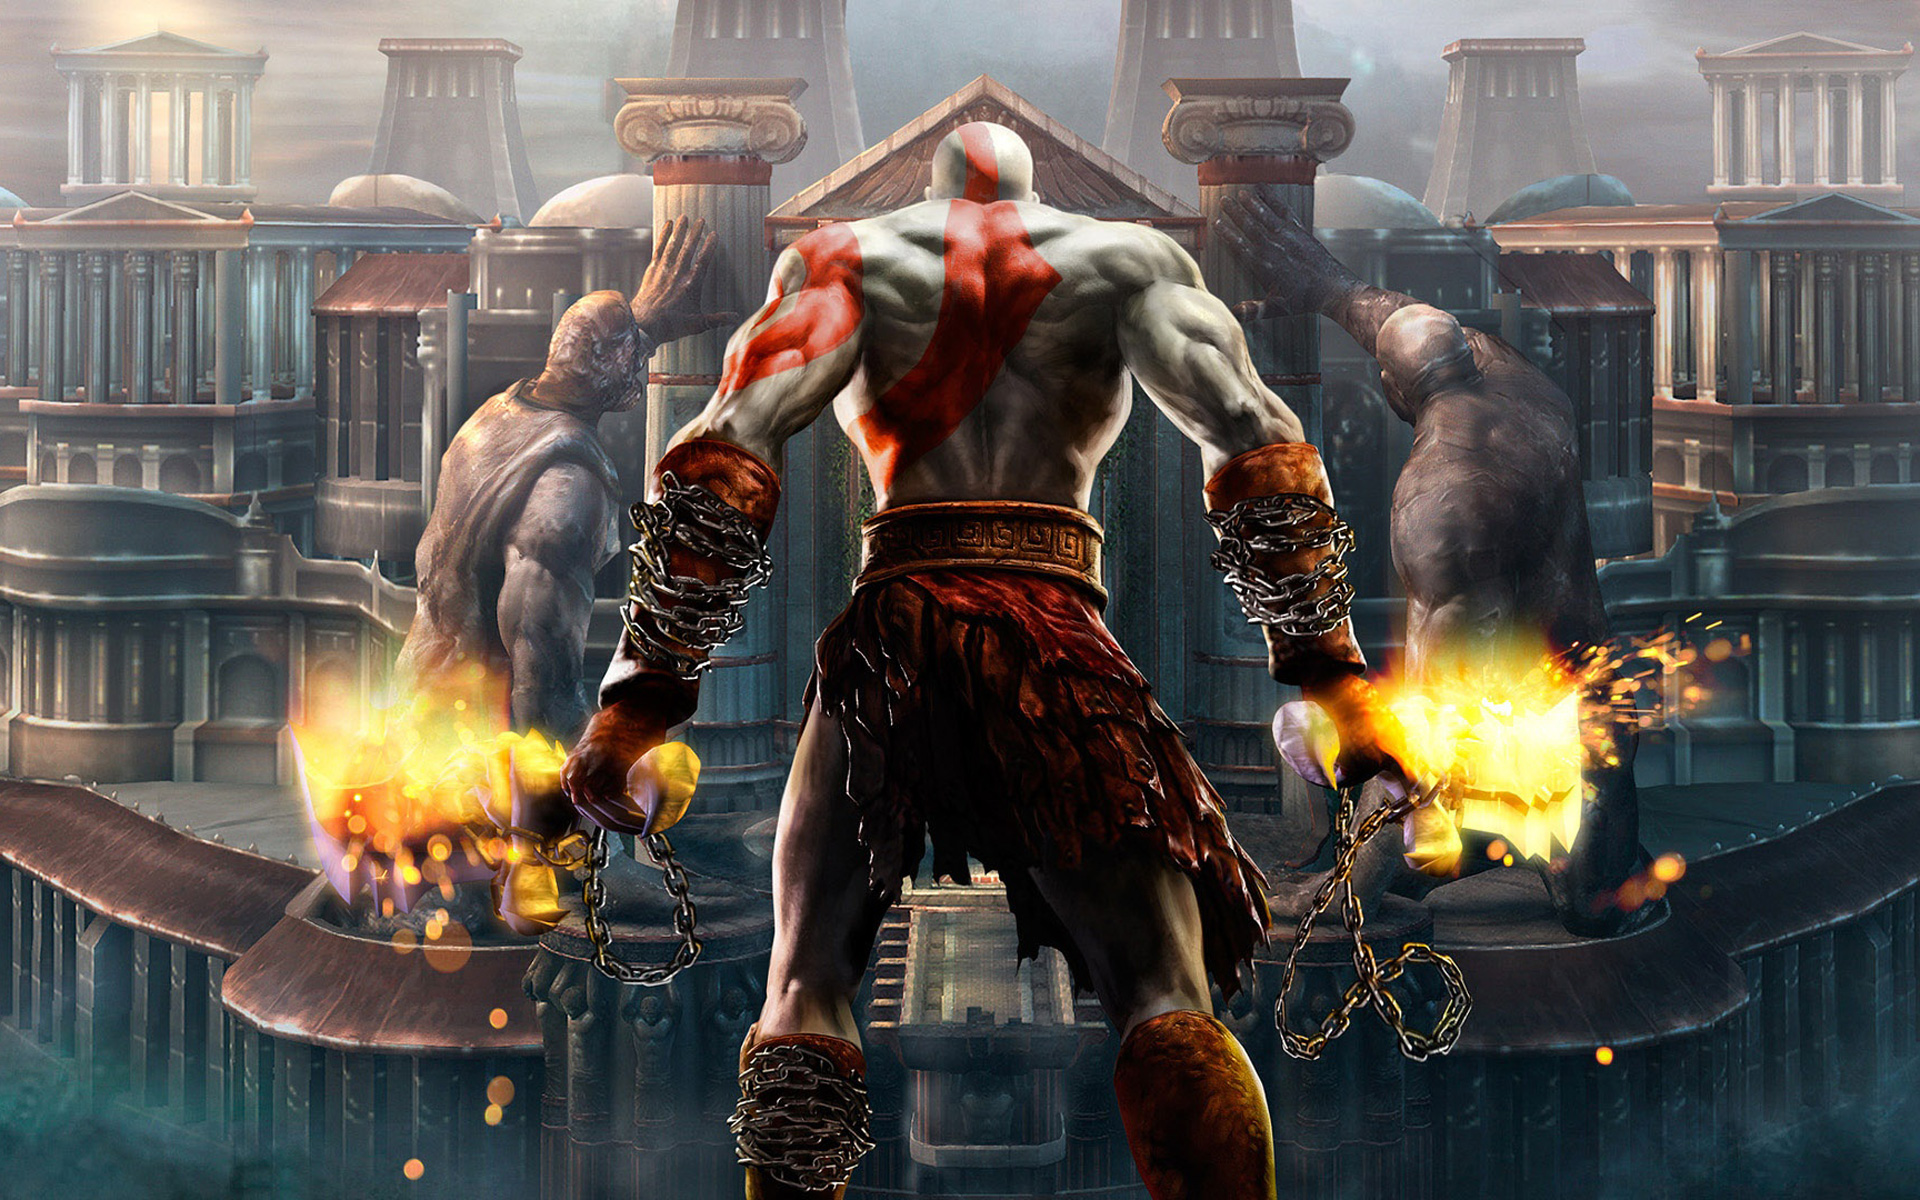 A new game in the God of War series is in development at Sony Santa Monica, the studio's Creative Director Cory Barlog let slip today at the PlayStation ...